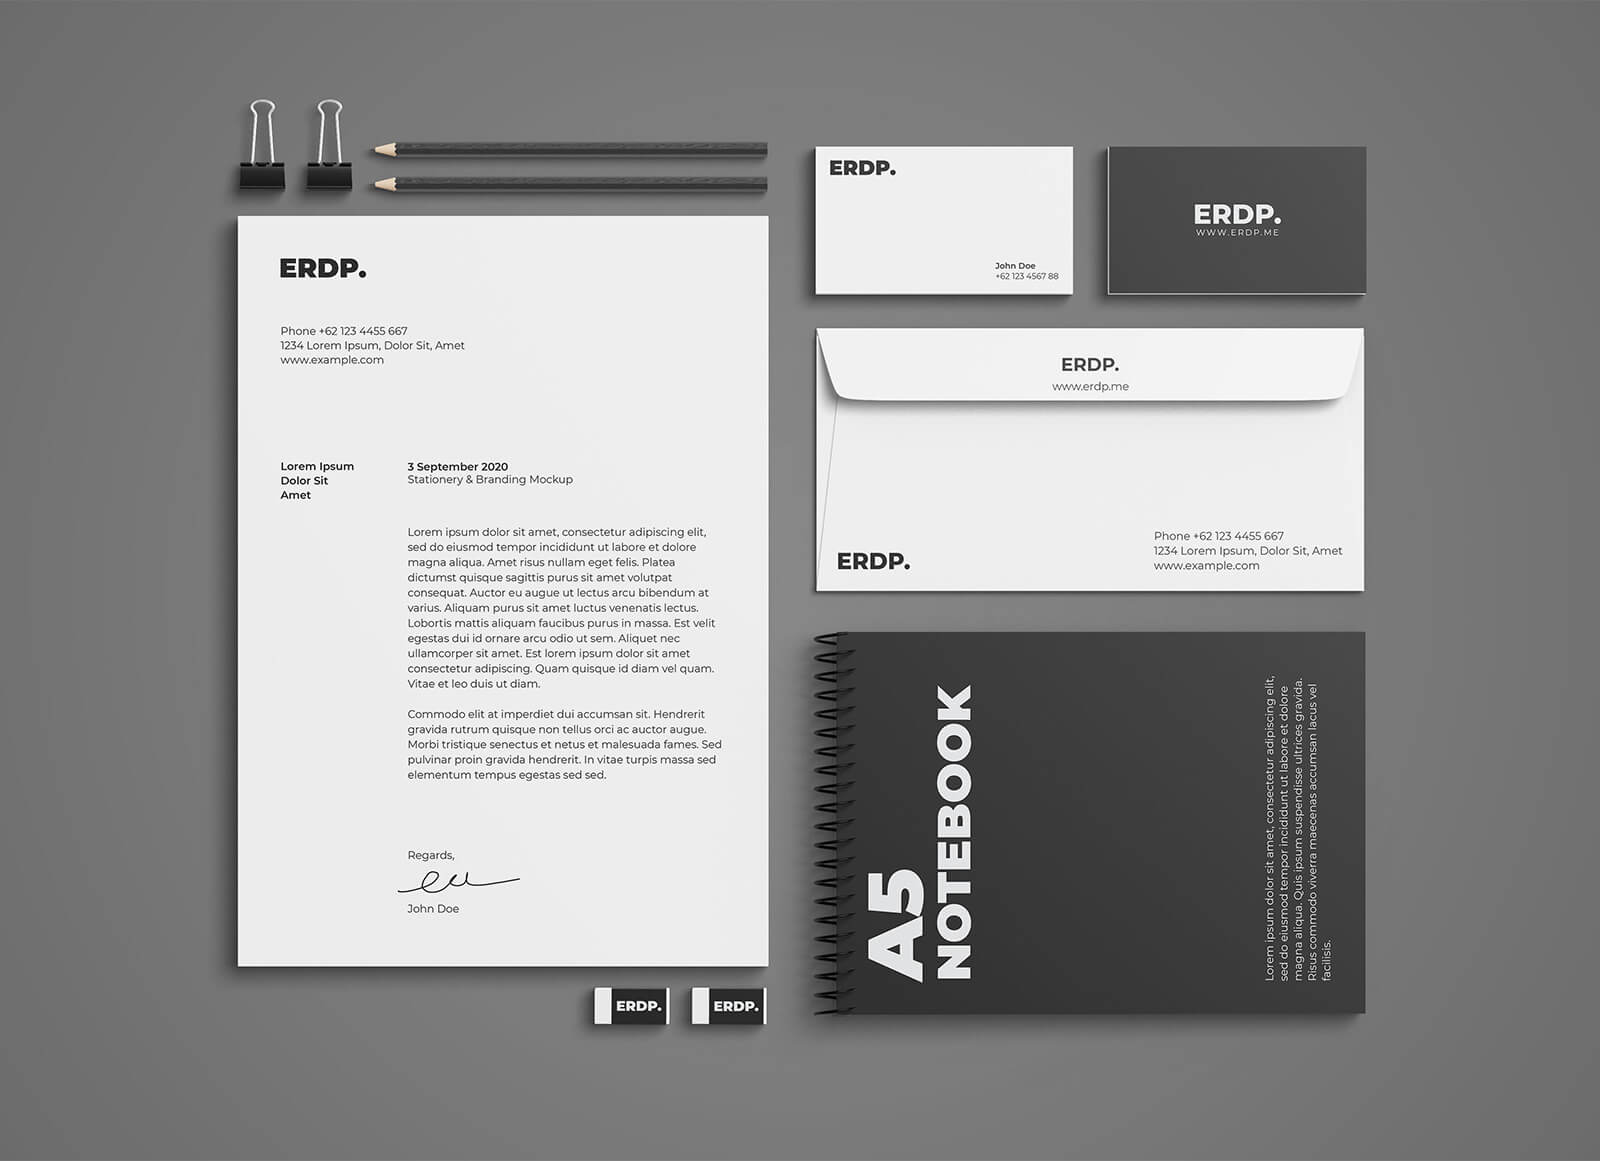 Free-Smple-Stationery-Mockup-PSD